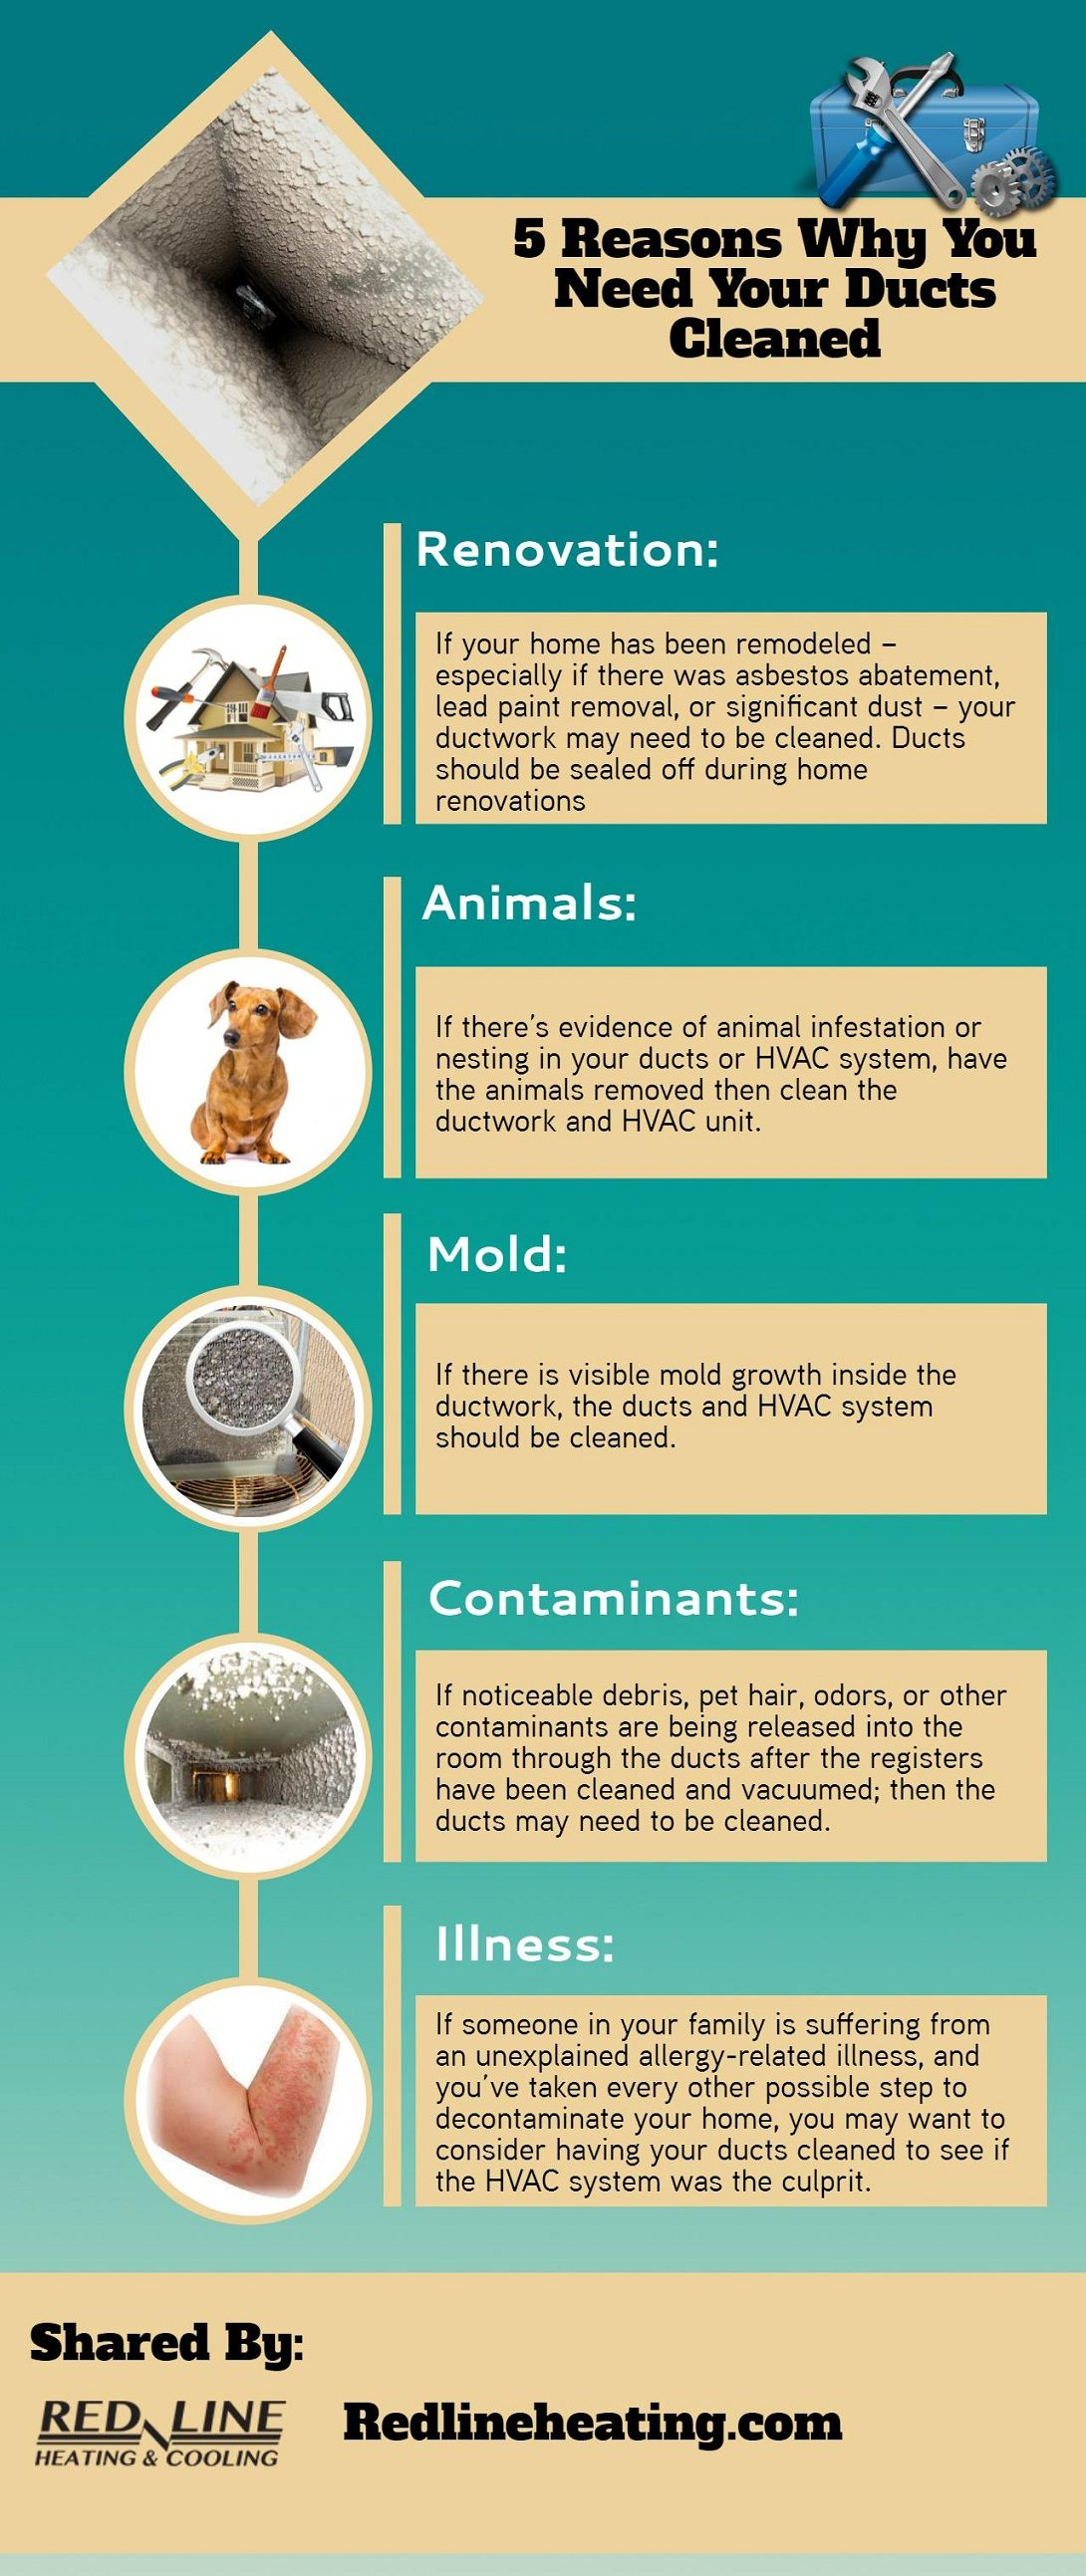 5 Reasons Why You Need Your Ducts Cleaned | furnace repair loveland ...